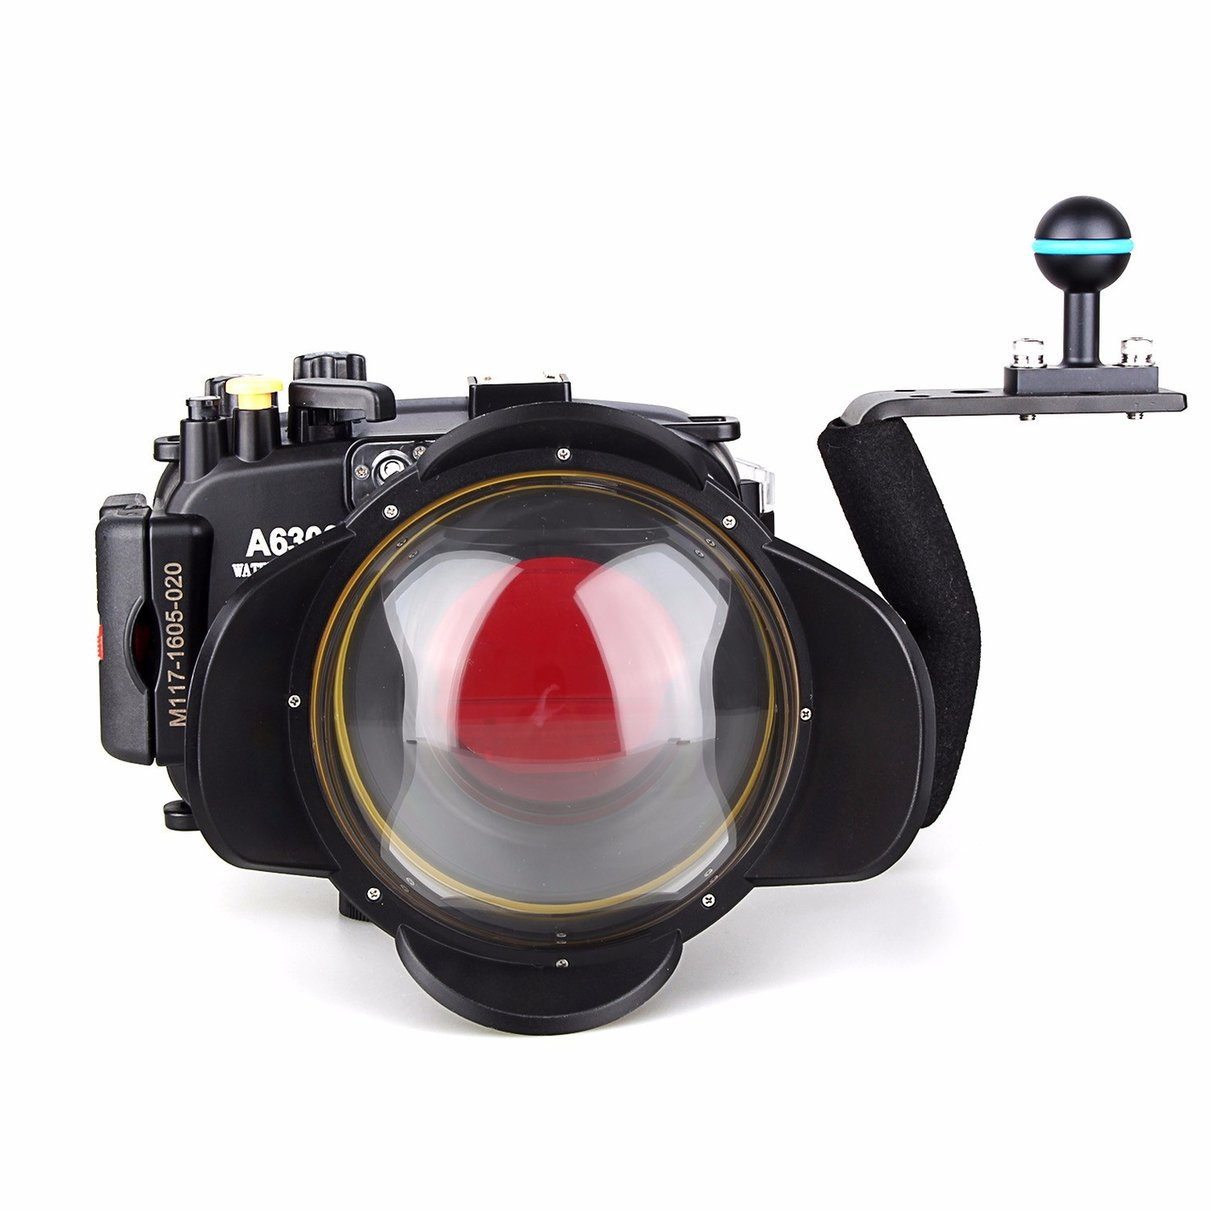 Meikon 40m/130ft Waterproof Underwater Camera Housing Case for A6300 + Aluminium handle + 67mm Fisheye Lens + 67mm Red Filter meikon 40m waterproof underwater camera housing case bag for canon 600d t3i